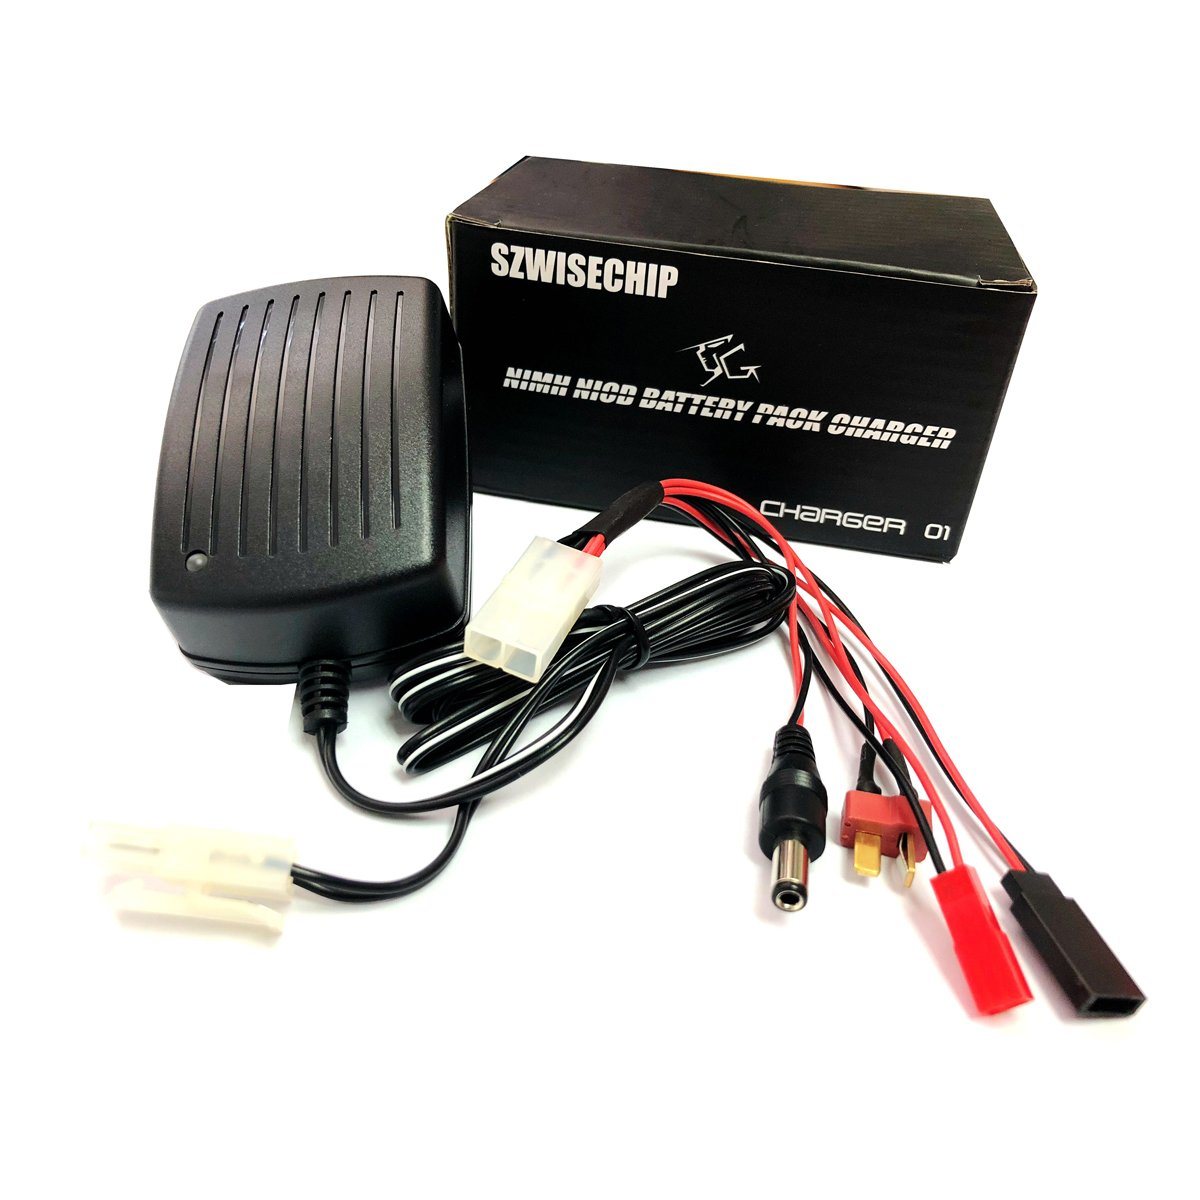 Nimh Nicd Battery Pack Smart Fast Charger 39 Cells How To Make A Circuit Homemade 36v 48v 6v 72v 84v 96v108v For Airsoft Packs Toy Rc Radio Controlled Model